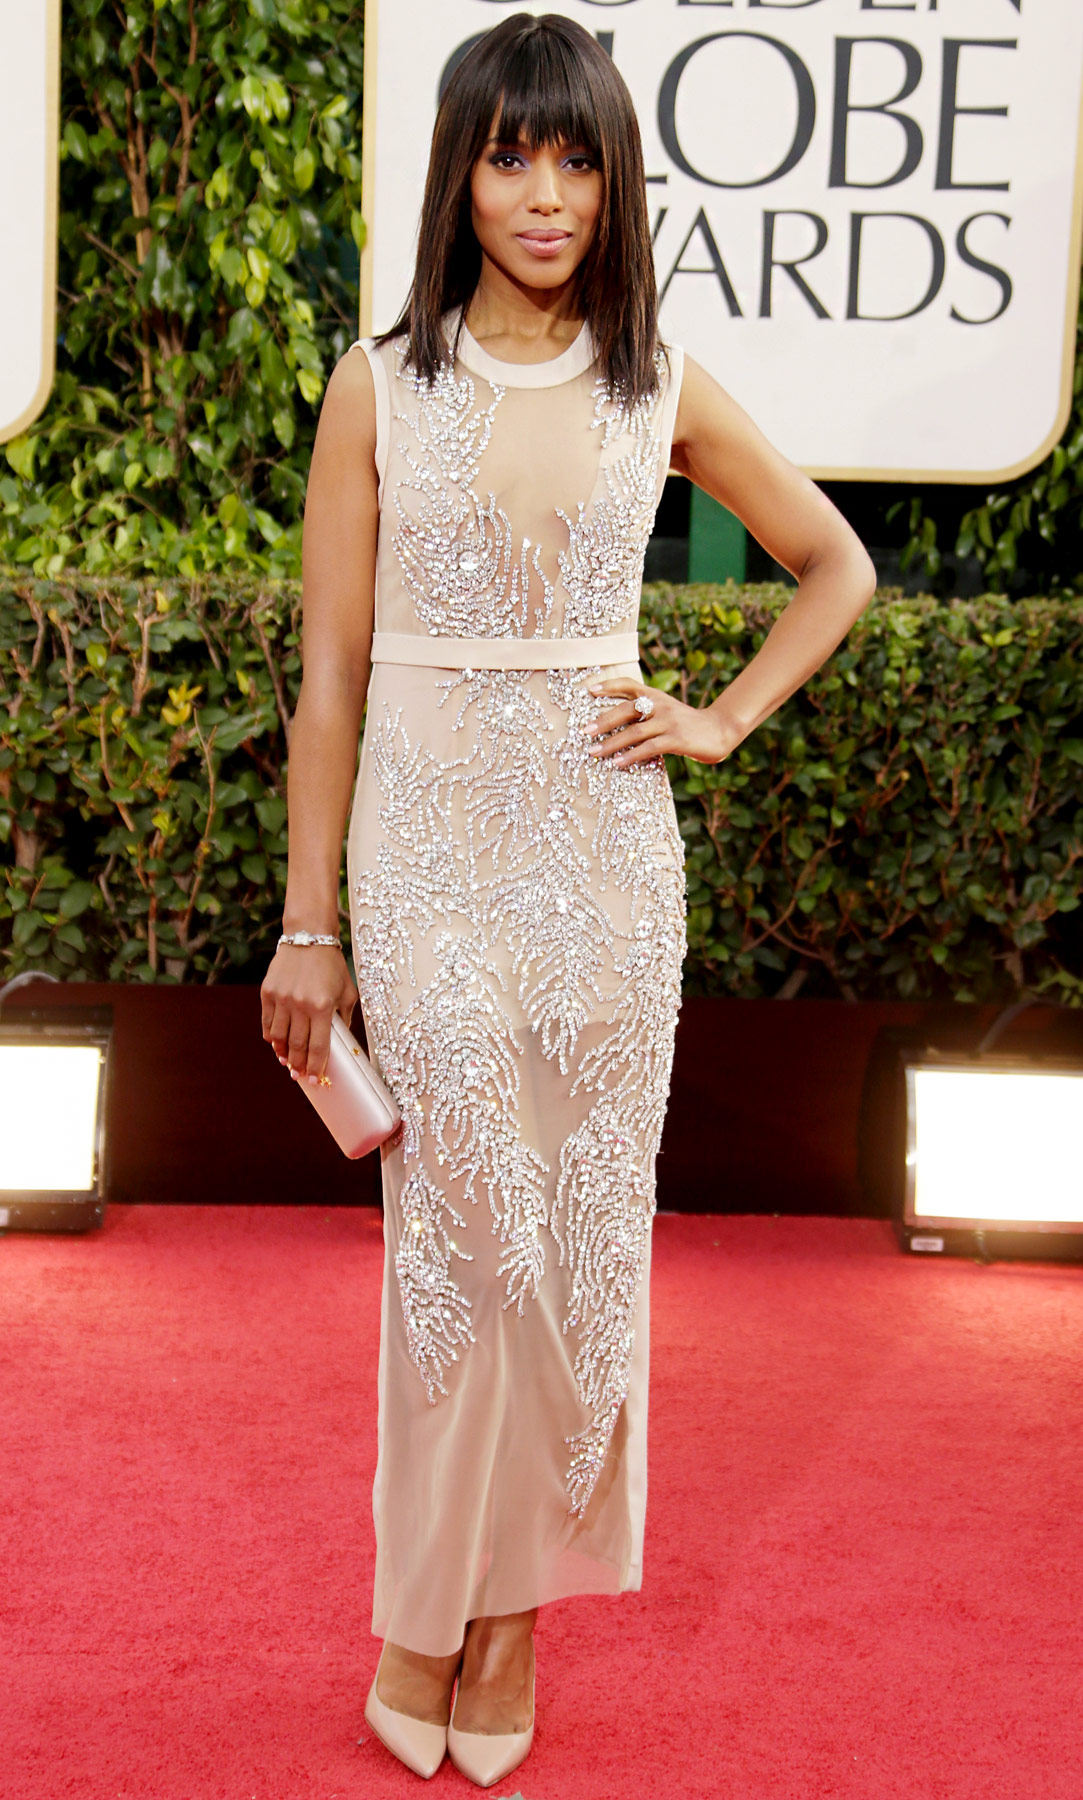 At the Golden Globes in Beverly Hills, the Django Unchained star stunned in a nude semi-sheer gown by Miu Miu with intricate all-over rhinestone beading. Nude Prada pumps, a satin clutch, and diamond jewelry completed the glam ensemble.